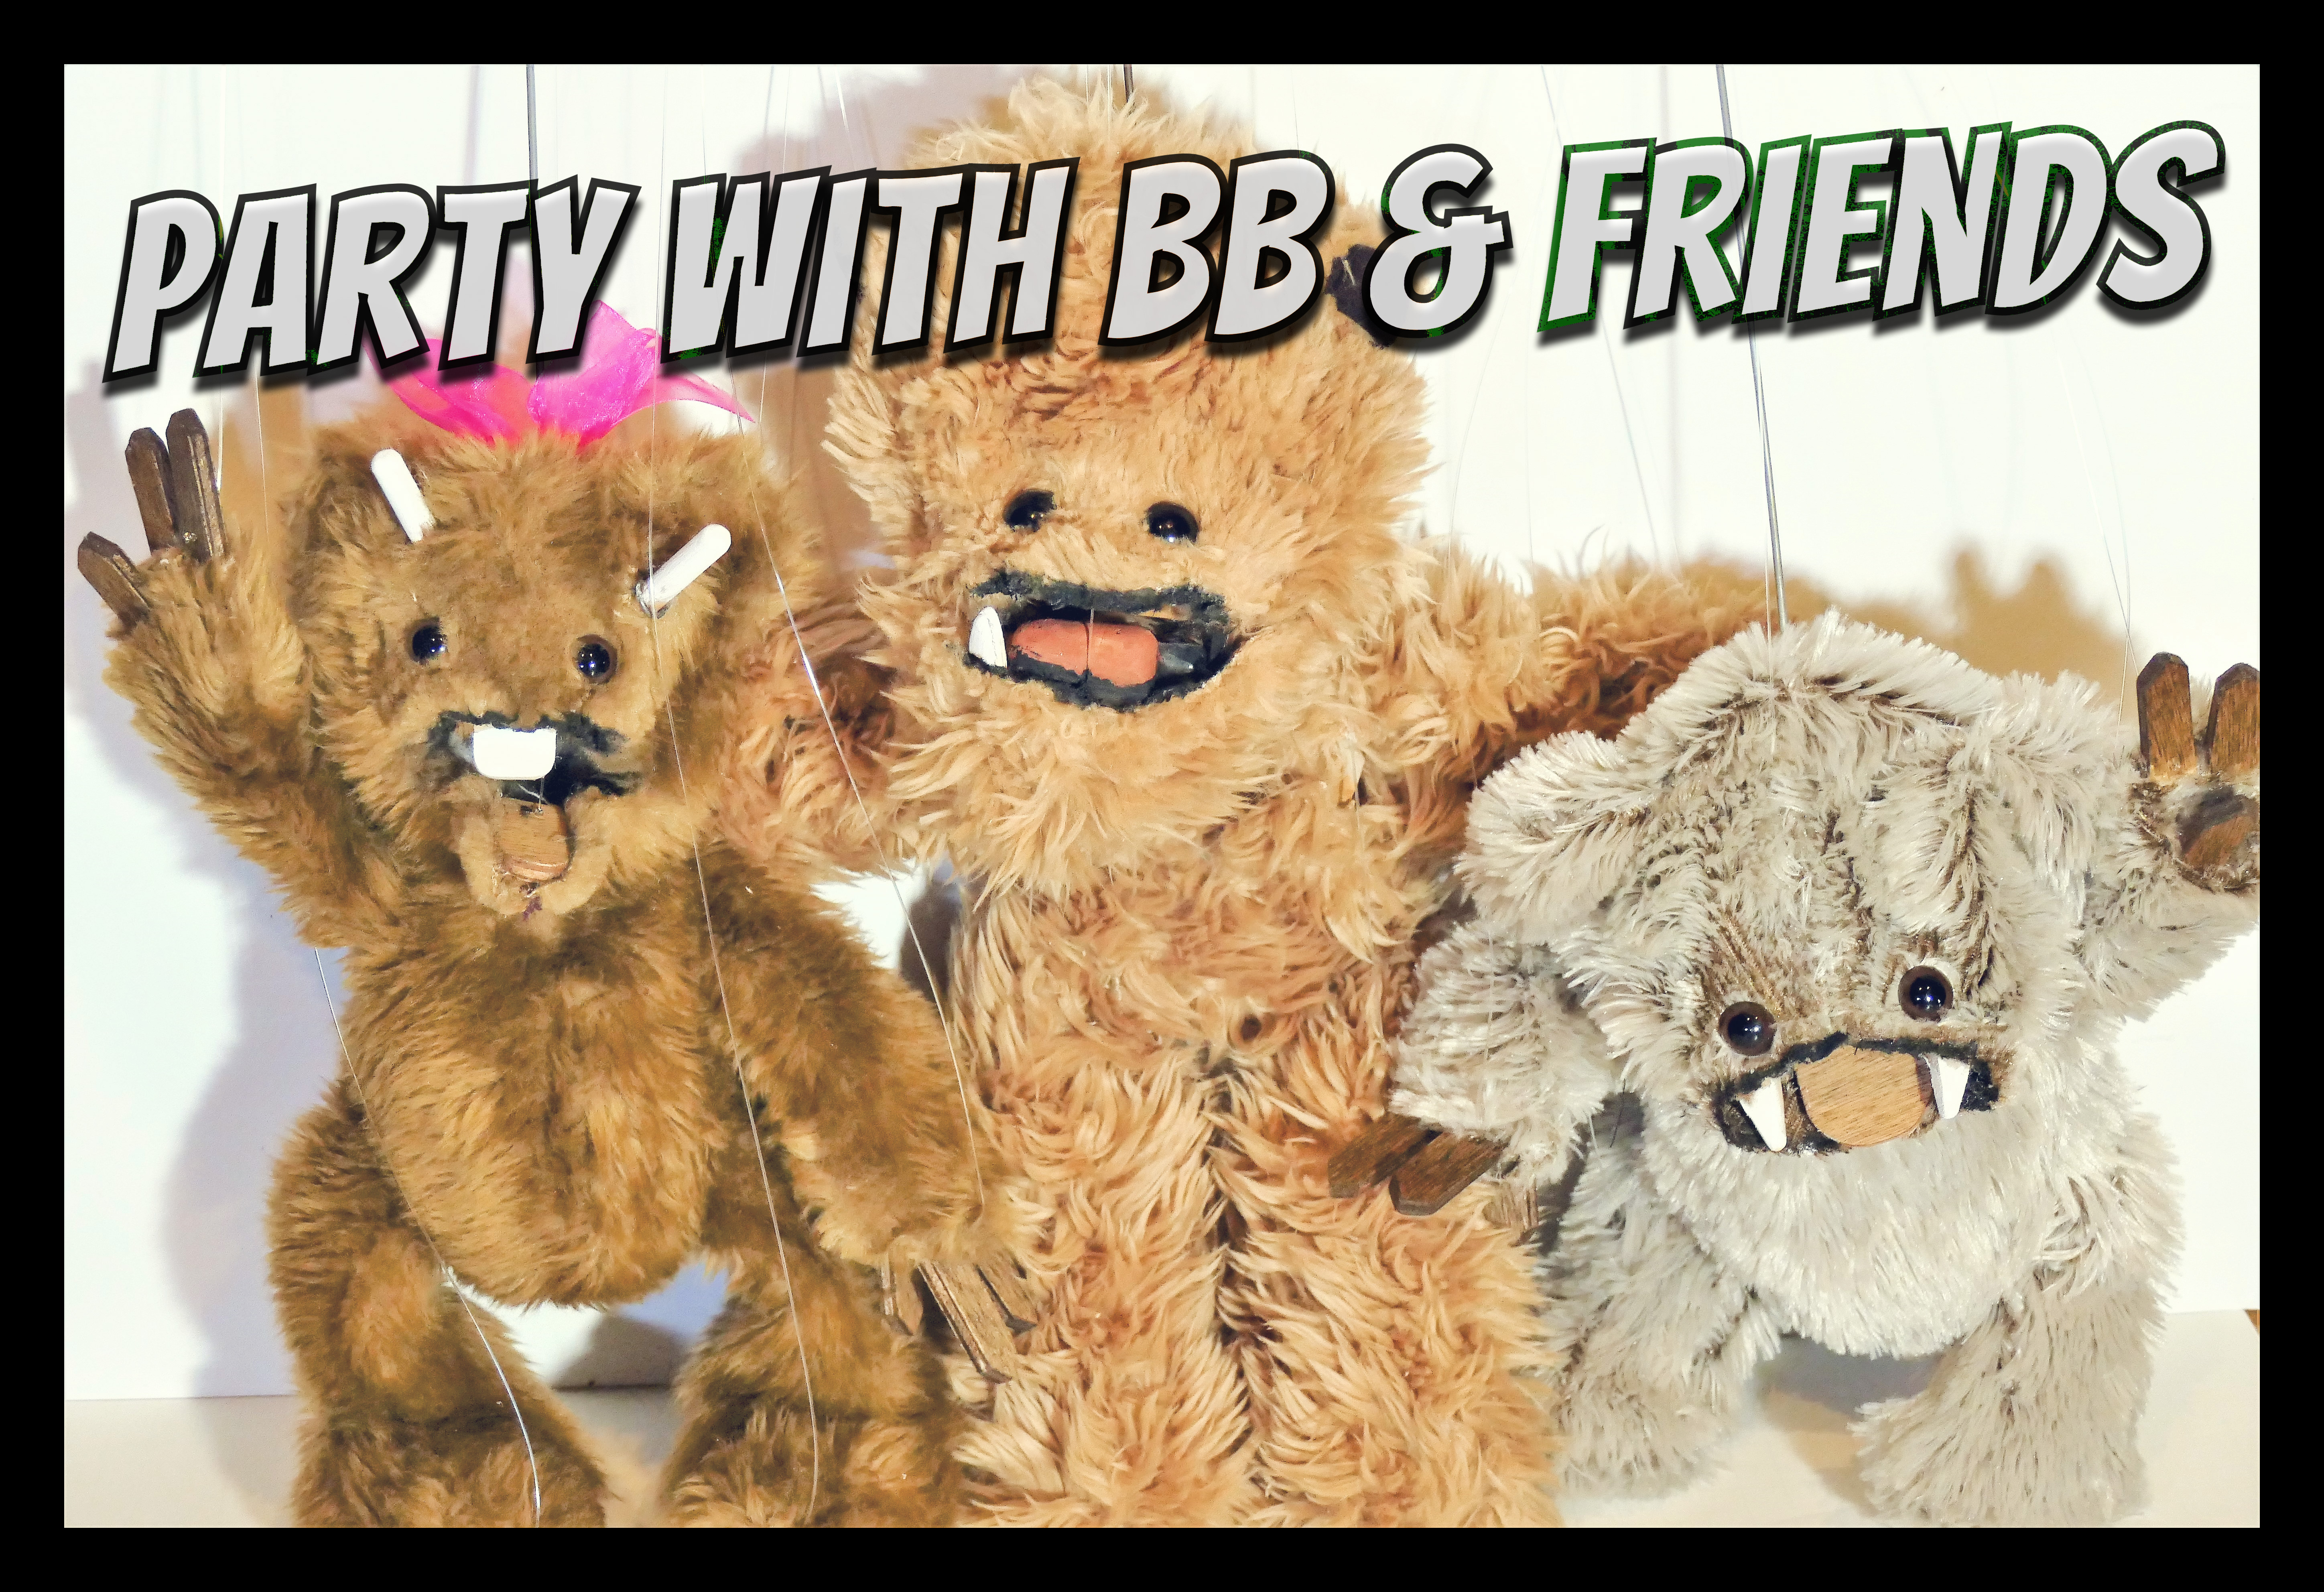 PARTY WITH BB & FRIENDS!